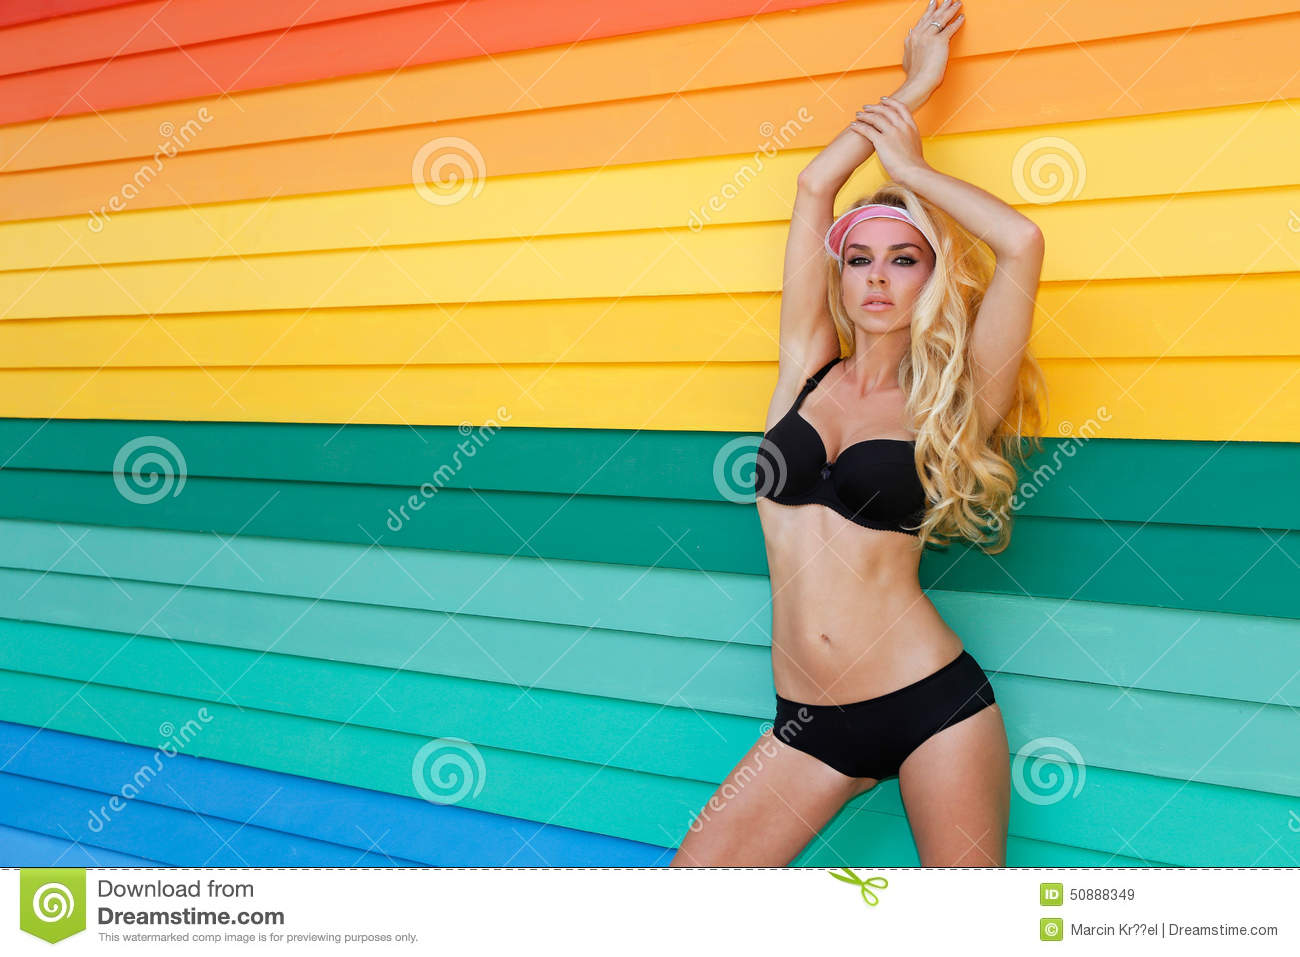 Very beautiful woman in the fantastic colourful dress on the colourful background from boards